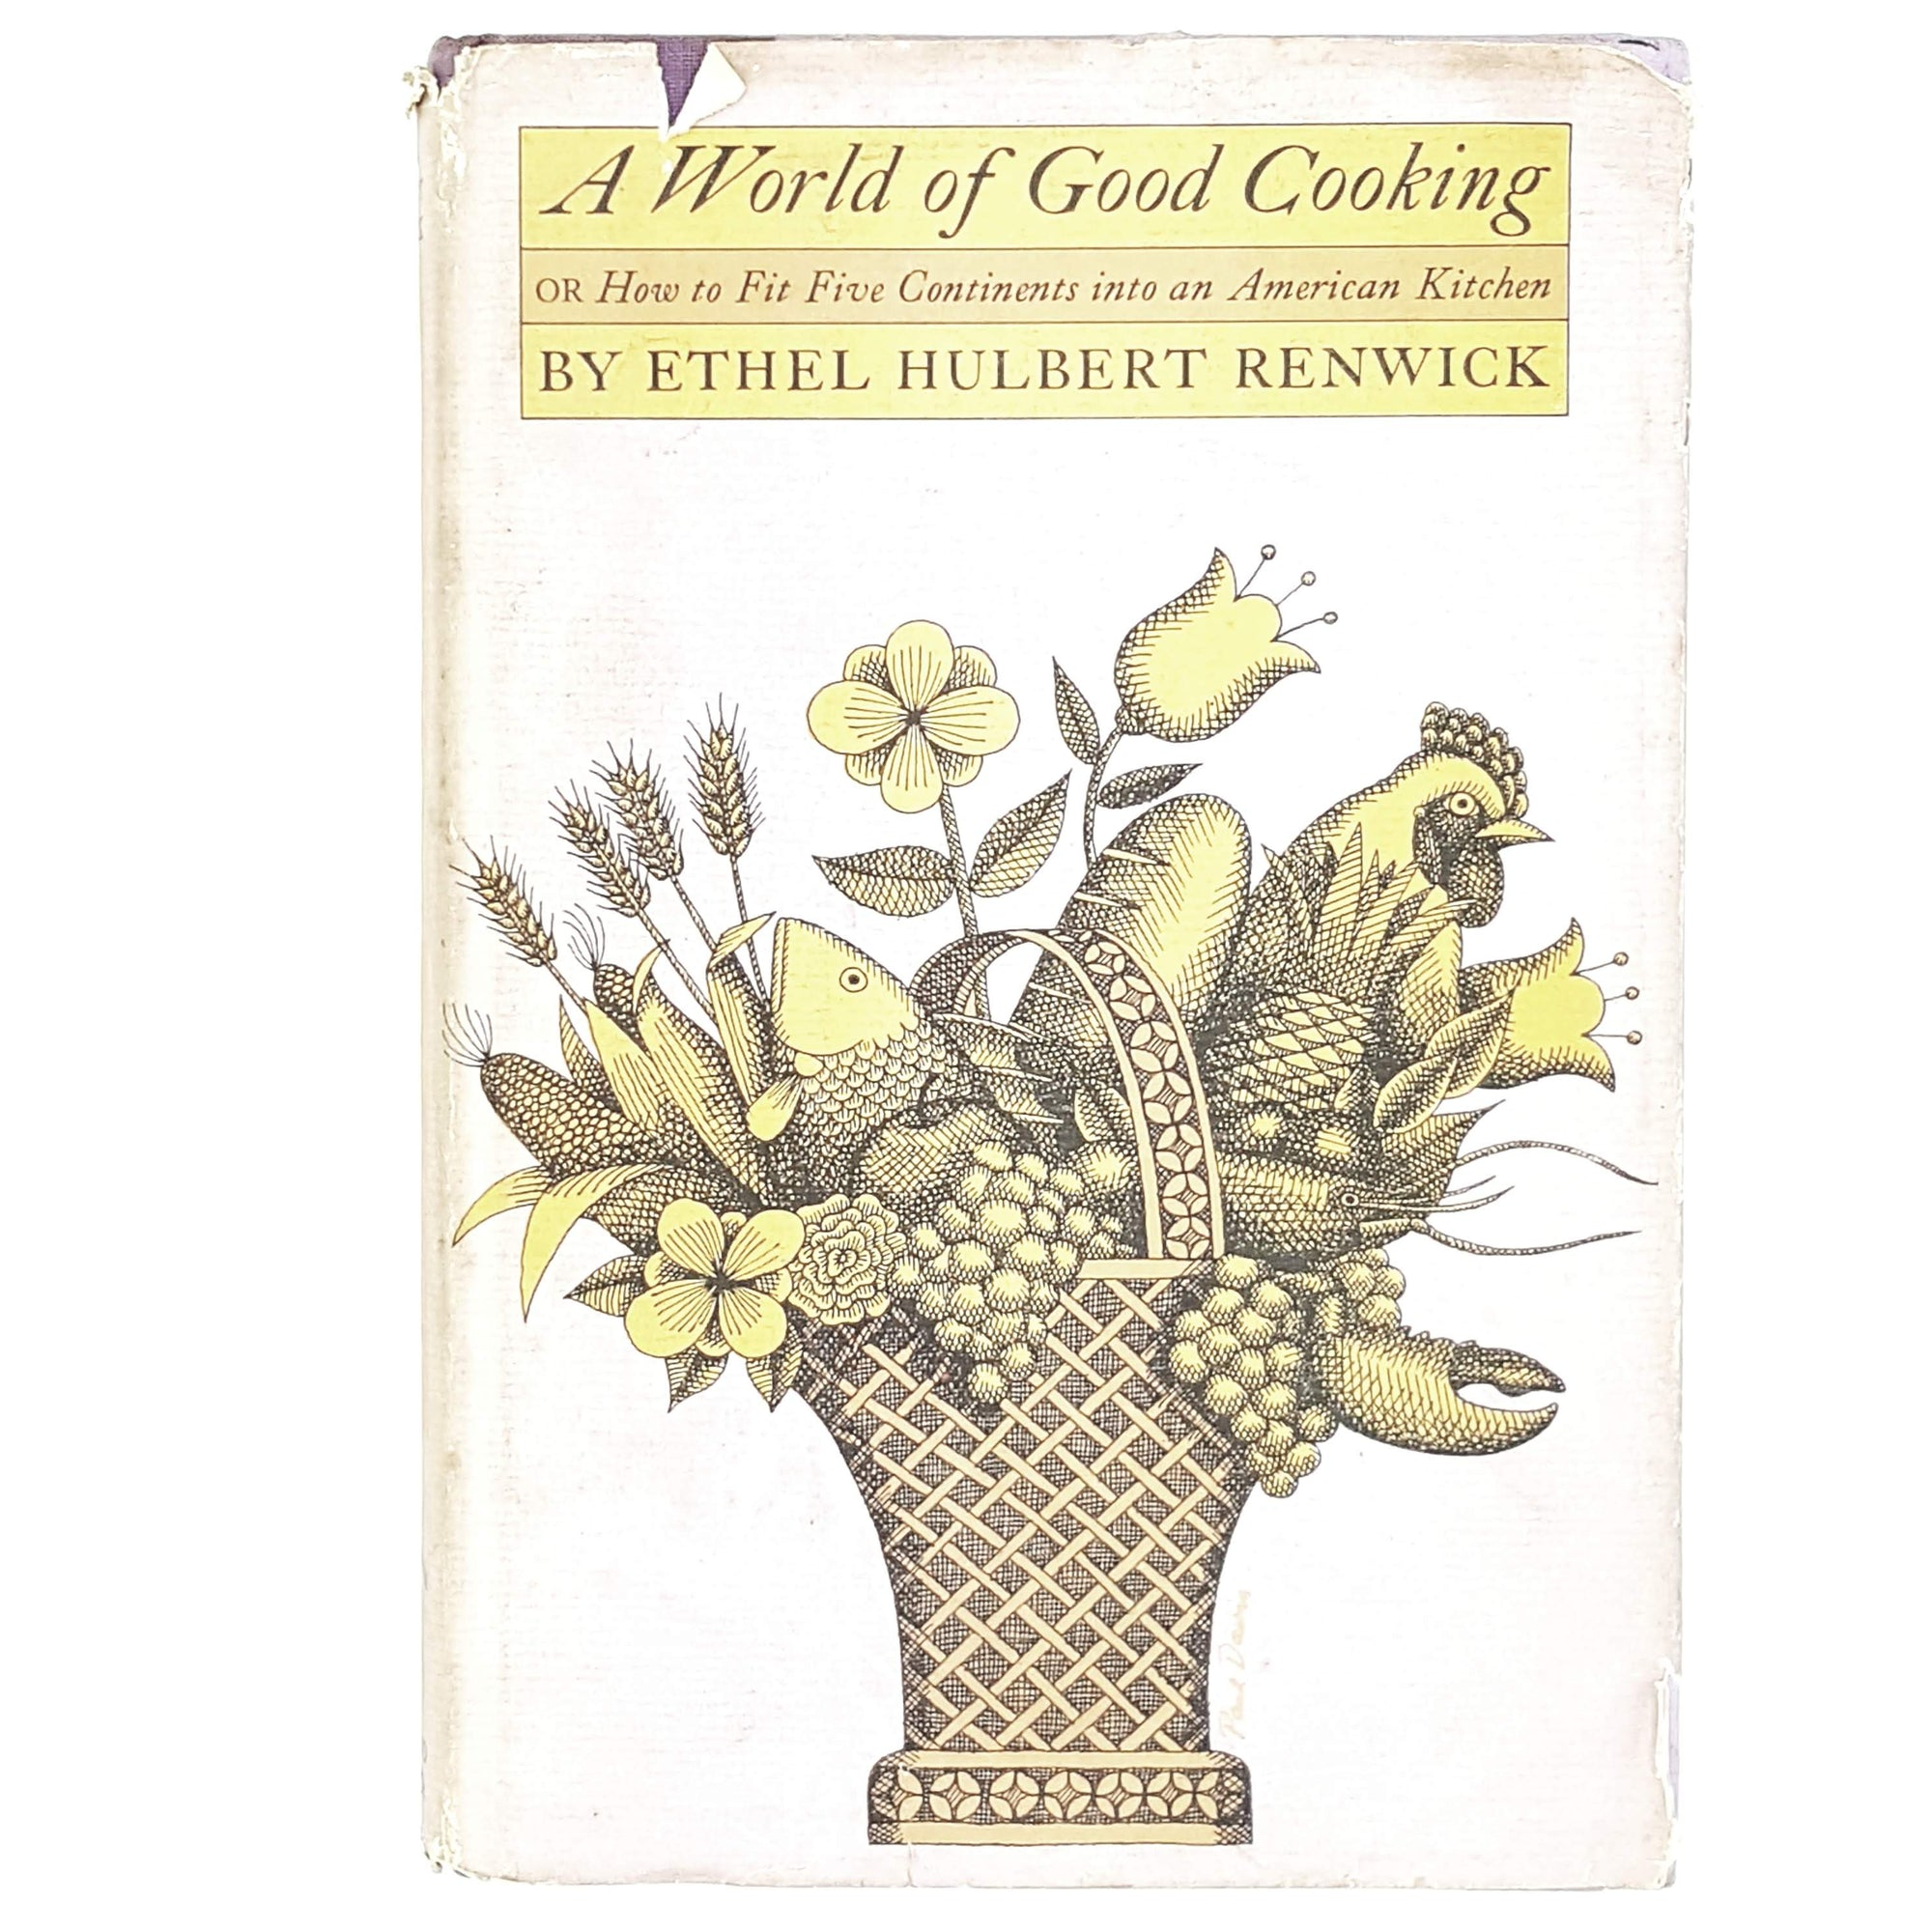 A World of Good Cooking by Ethel Hulbert Renwick 1962